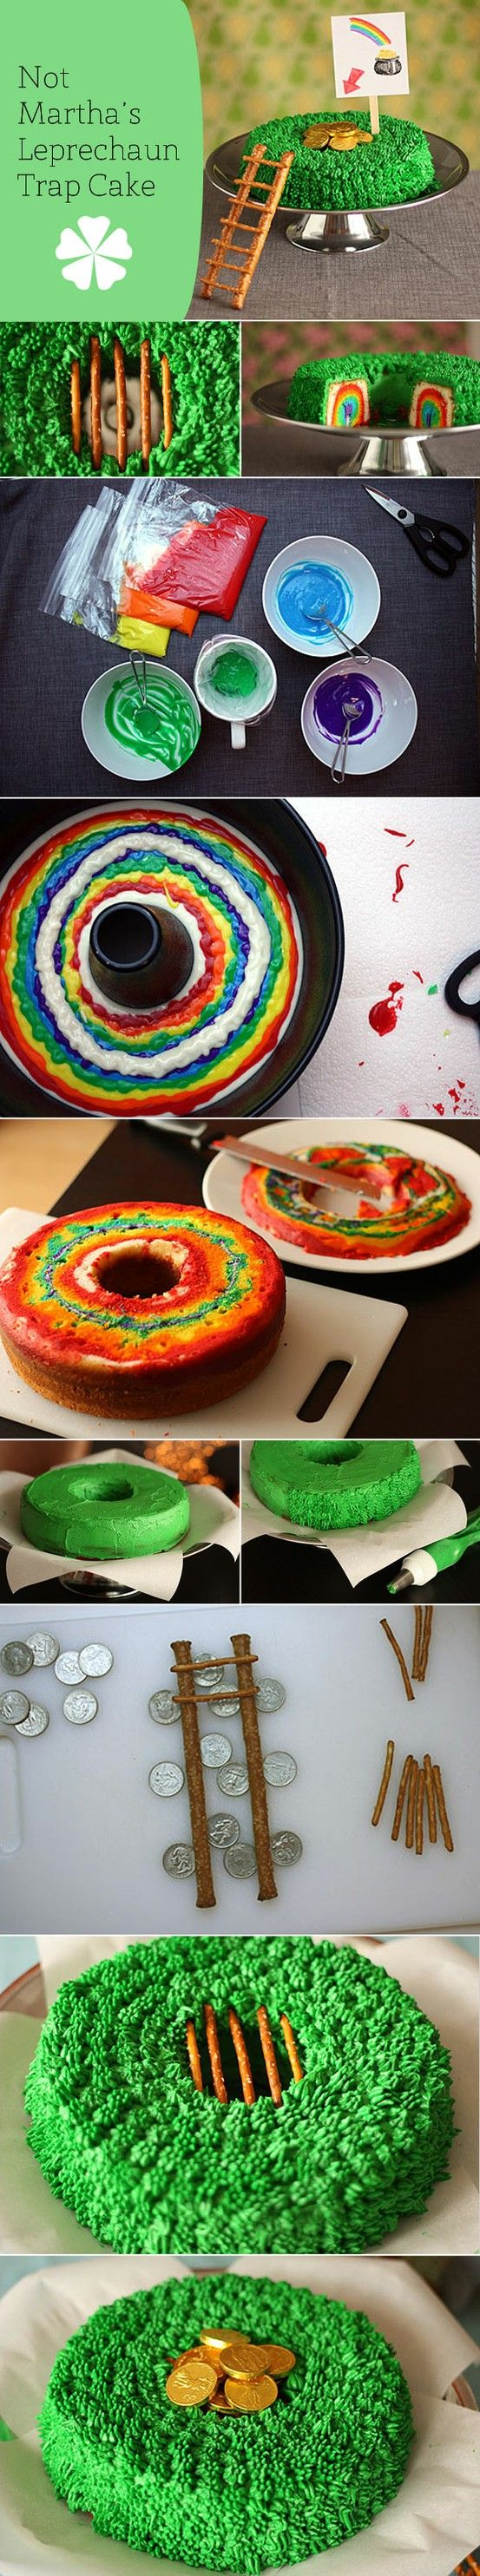 Leprechaun Trap Cake by blogger Not Martha! @Jenni Ramoya Cline I want you to make this for sunday!